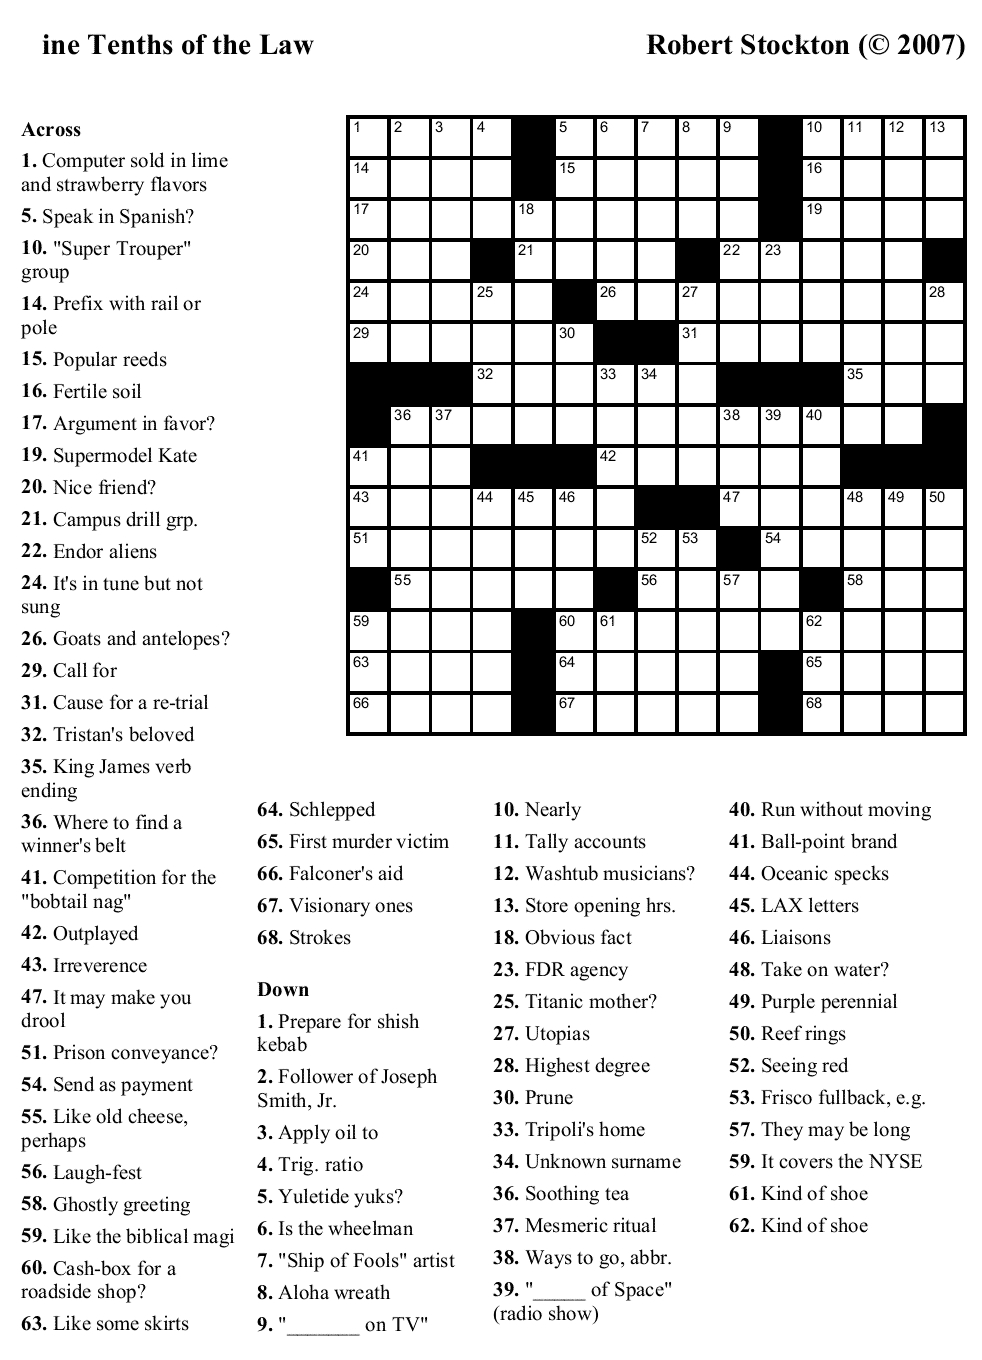 Easy Printable Crossword Puzzels - Infocap Ltd. - Make Free Printable Crossword Puzzle Online